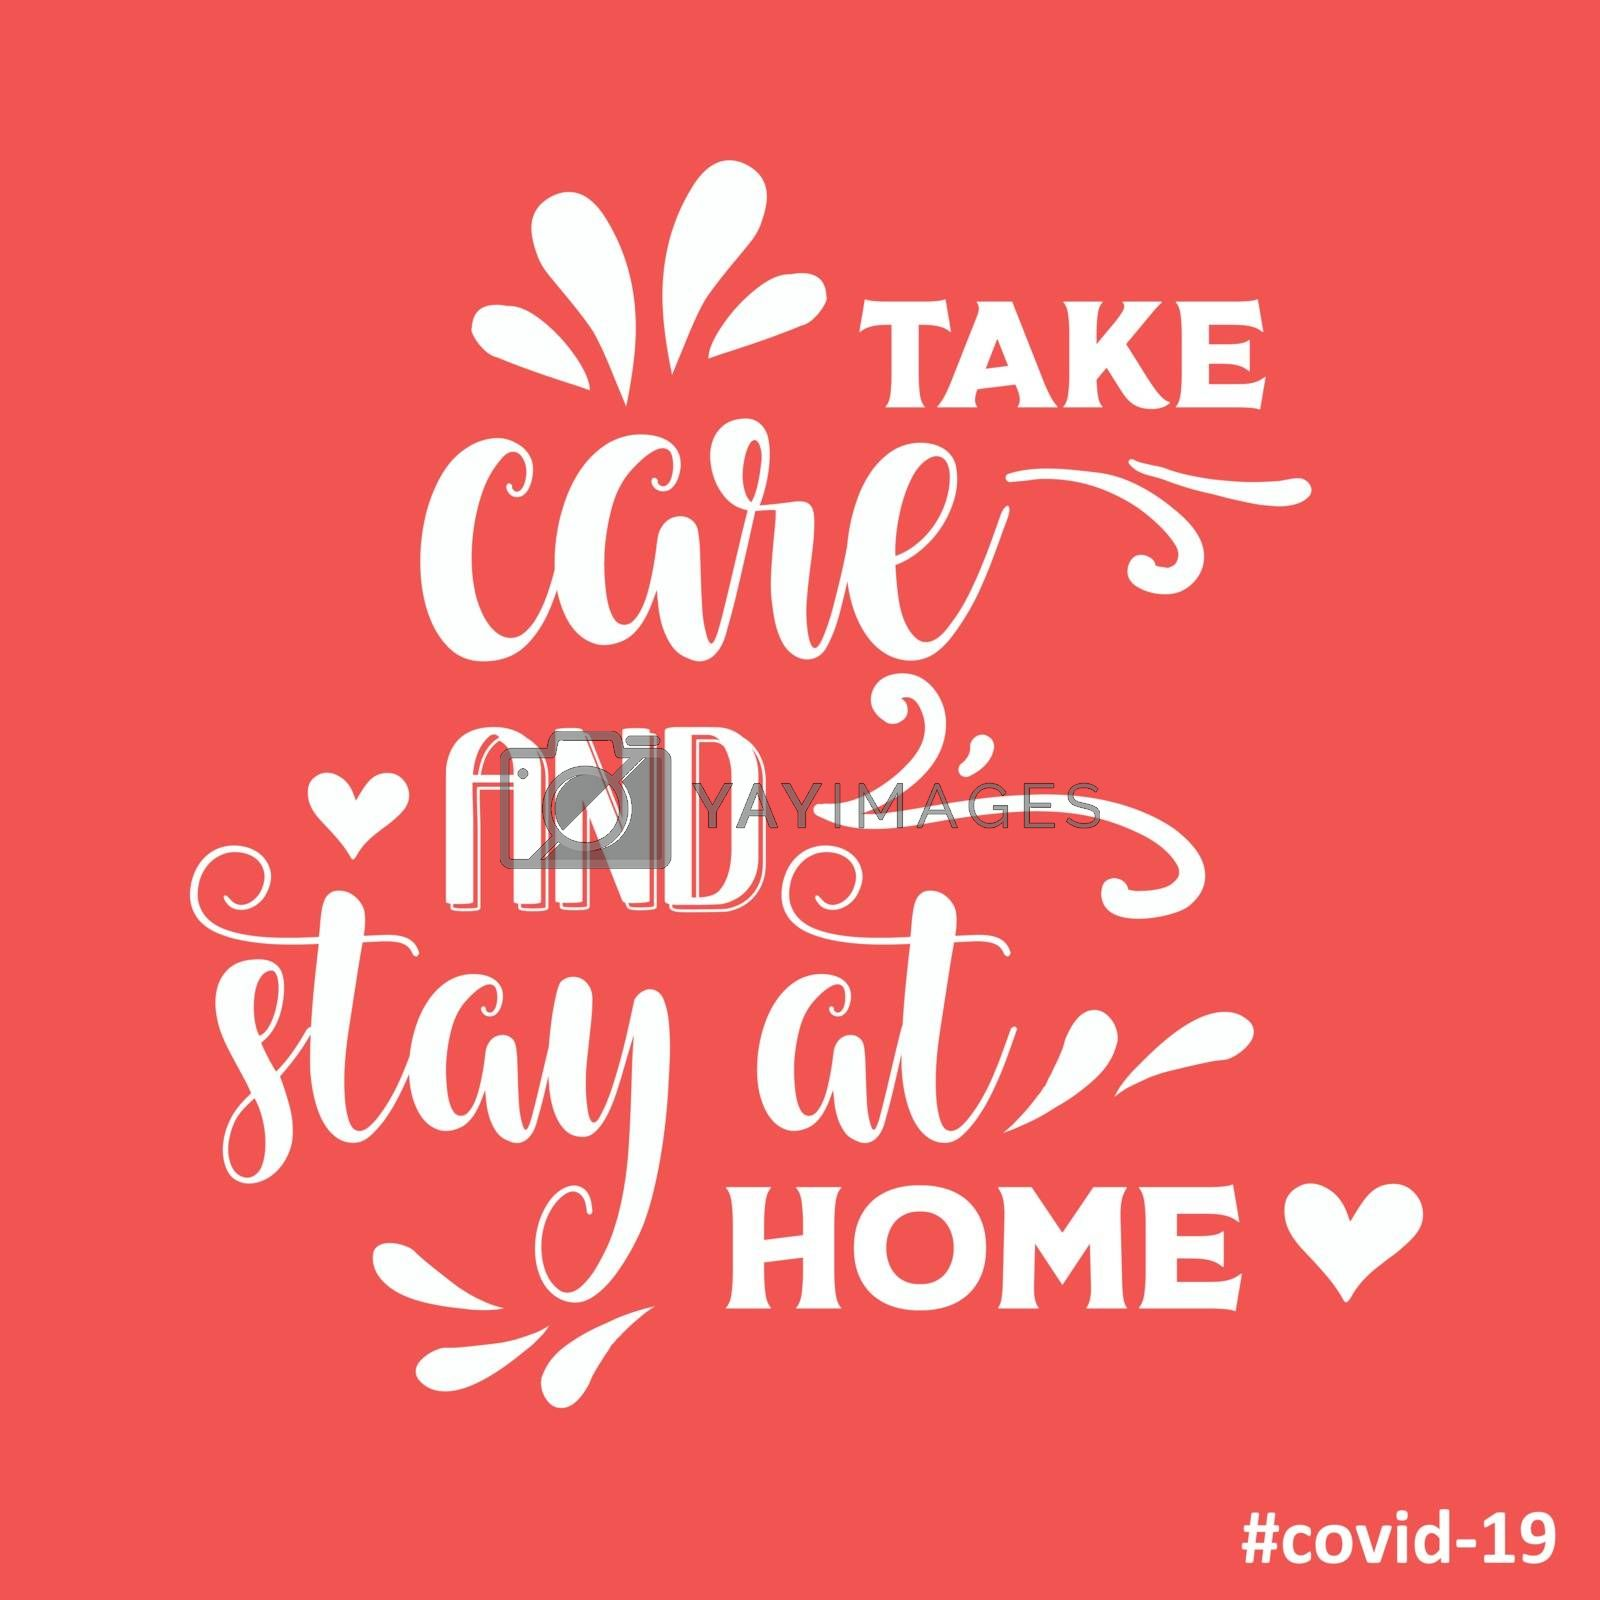 """Take care and stay at home""-coronavirus advice, Covid-19 poster by balasoiu"